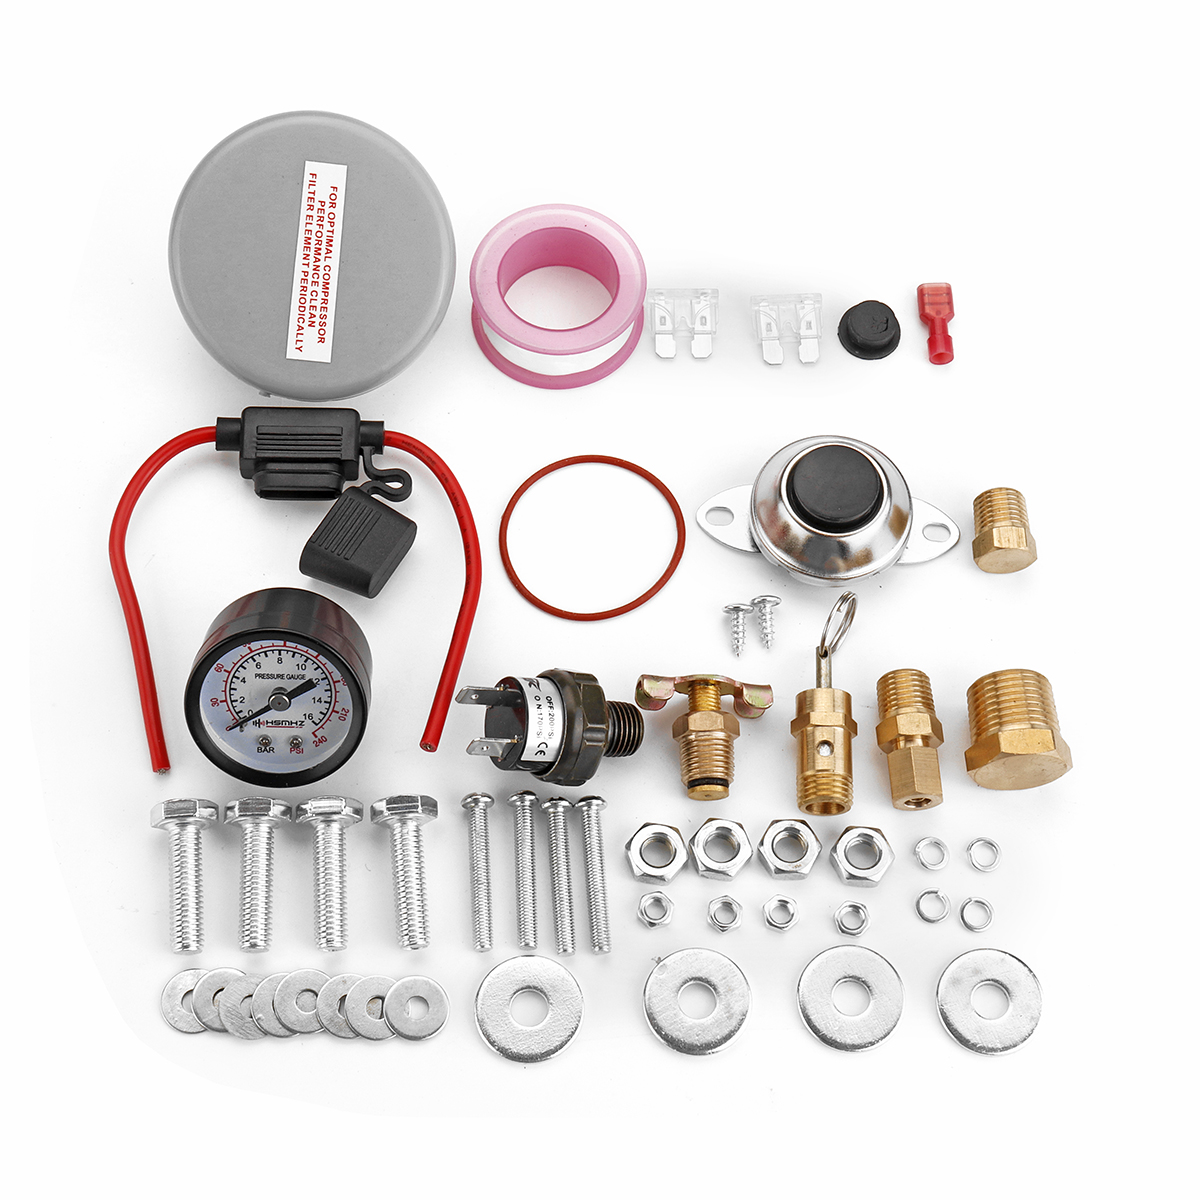 5 Gal Air Tank/200 PSI Compressor Onboard System Kit For Train Horn 12V